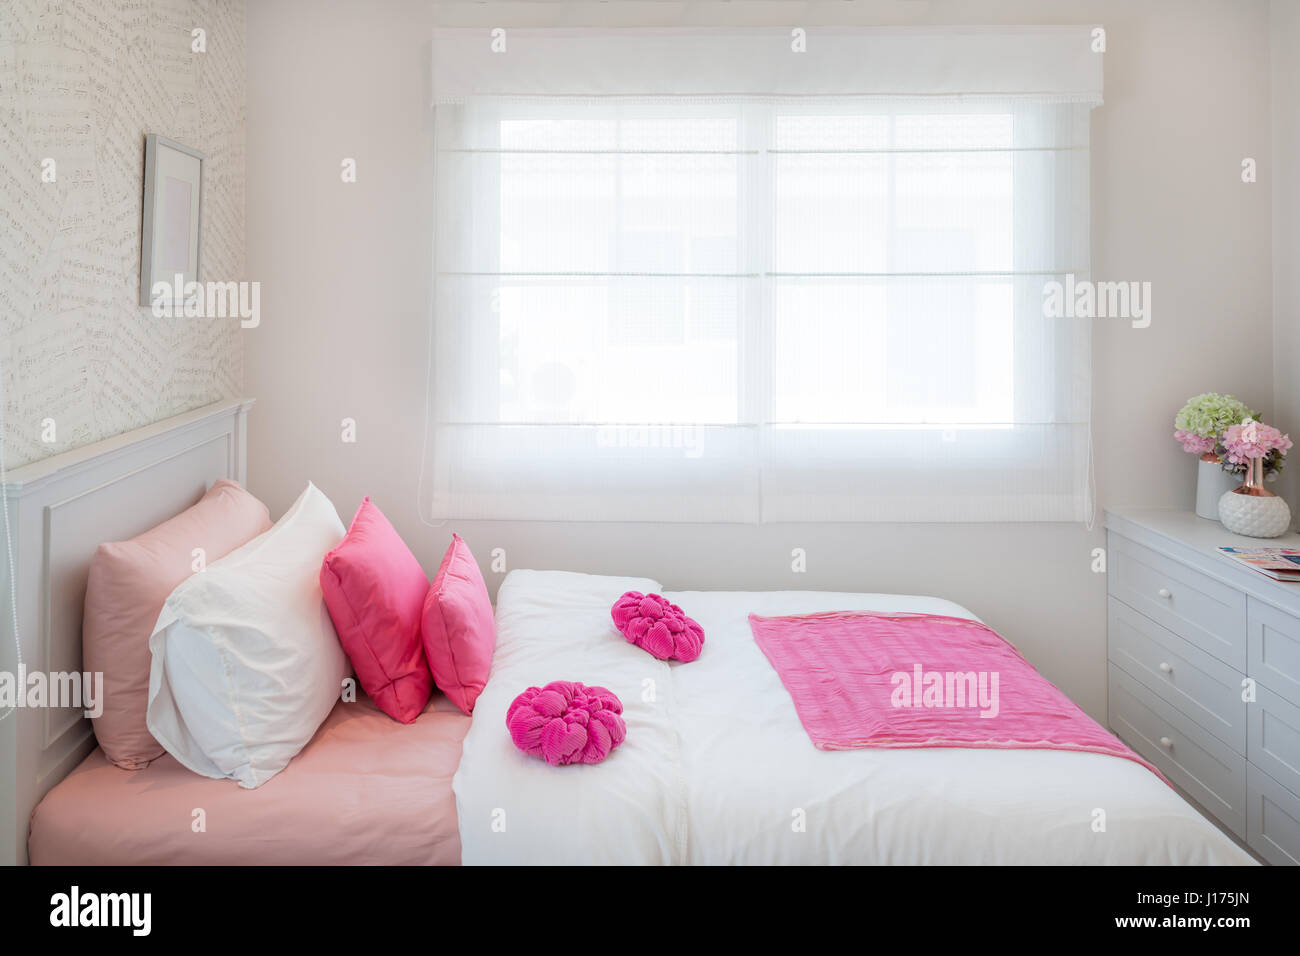 Interior of White bedroom with double bed and pink pillows and bookshelf at home. Stock Photo